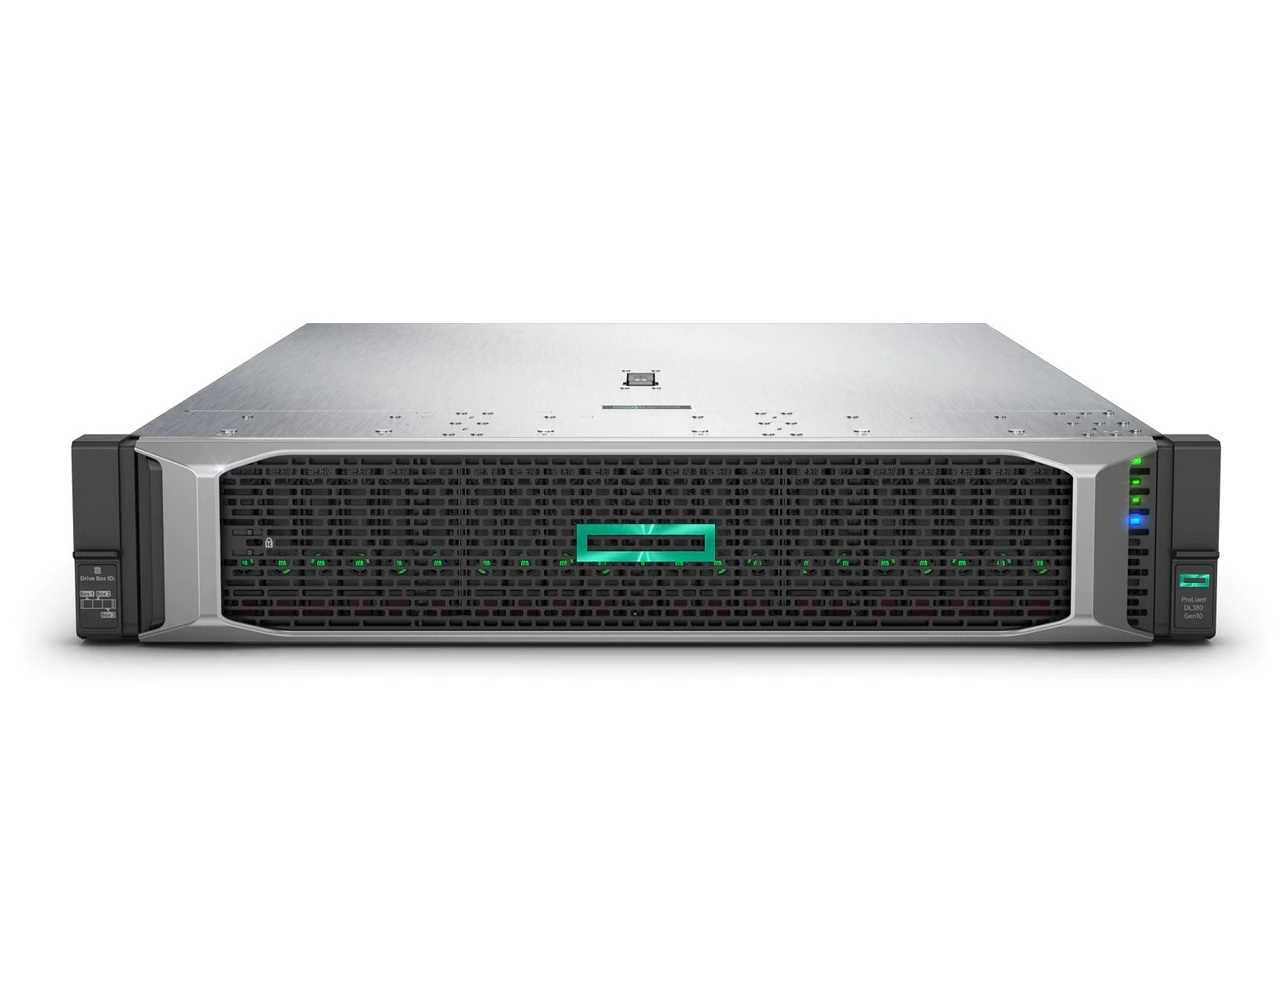 Сервер HPE HPE ProLiant DL380 Gen10 6230 2.1GHz 20-core 1P 64GB-R P816i-a 8SFF 800W RPS Server